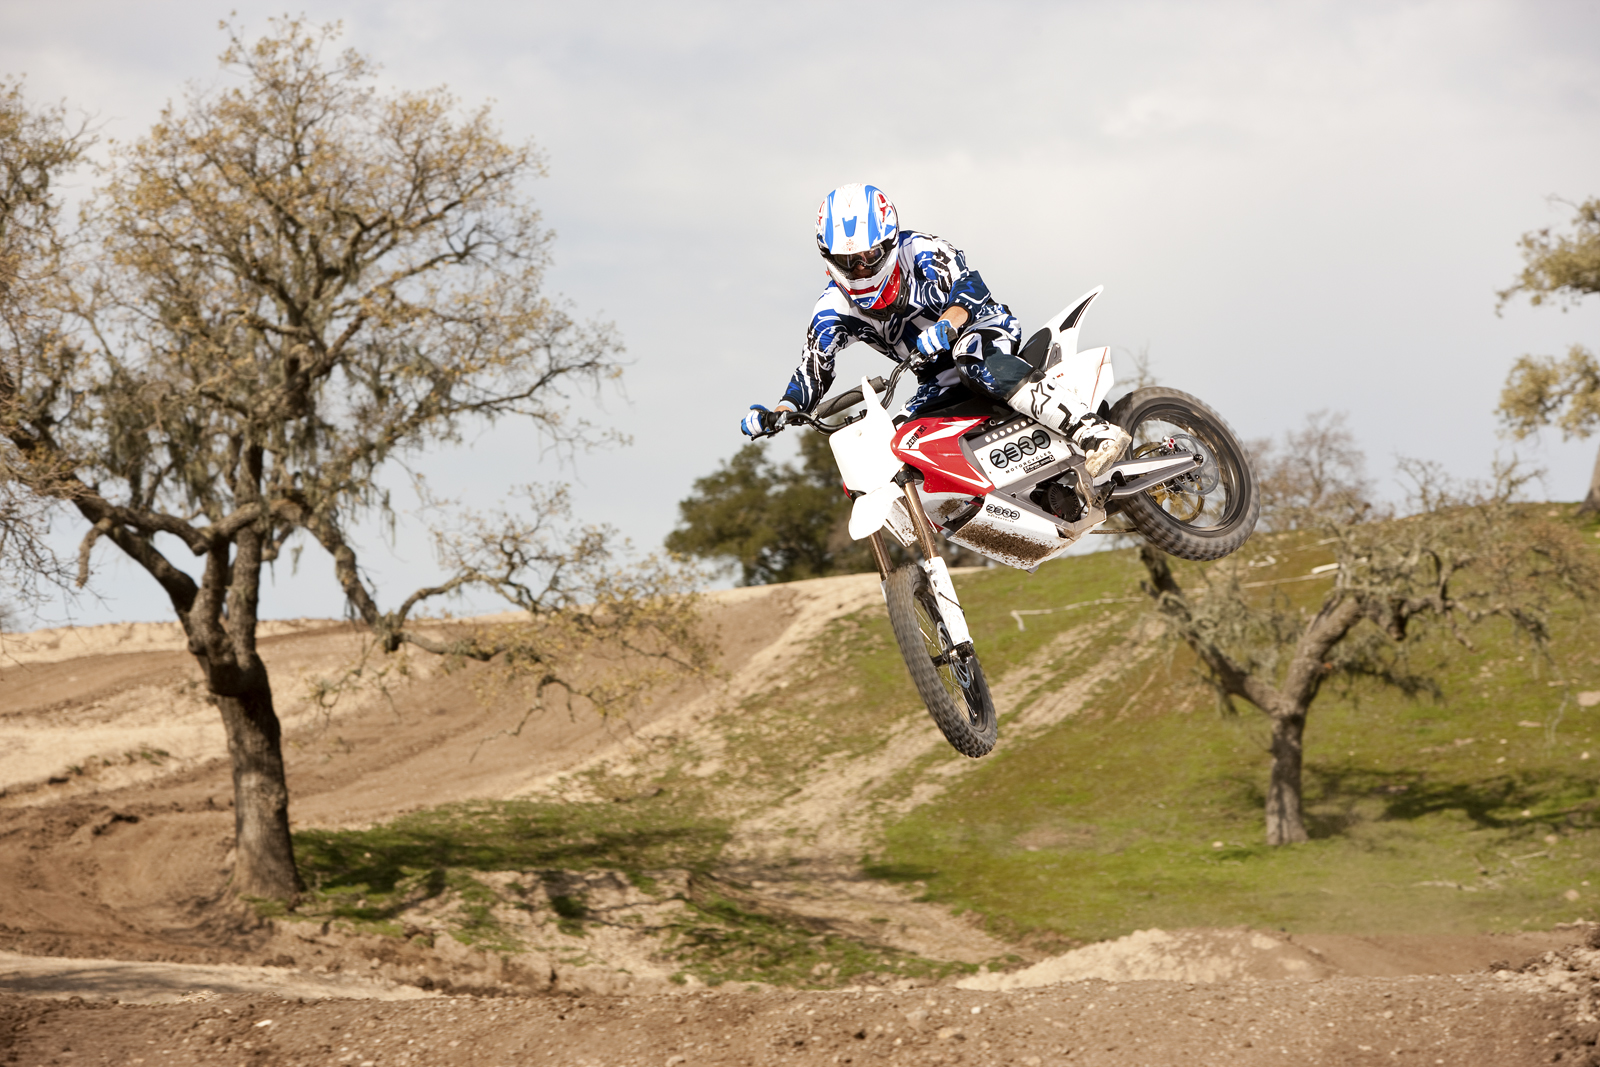 2010 Zero MX Electric Motorcycle: Zaca Station - Little Red Bike Jump